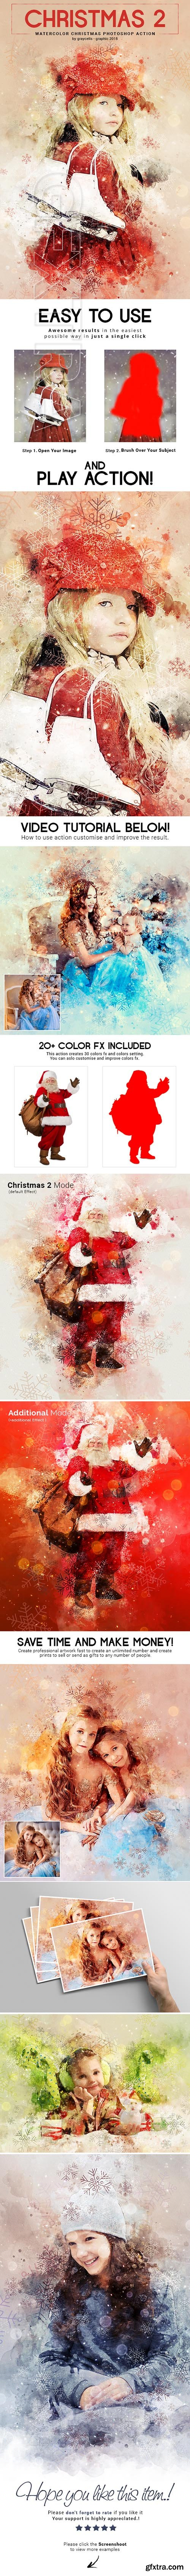 GraphicRiver - Christmas 2 - Photoshop Action 22887025